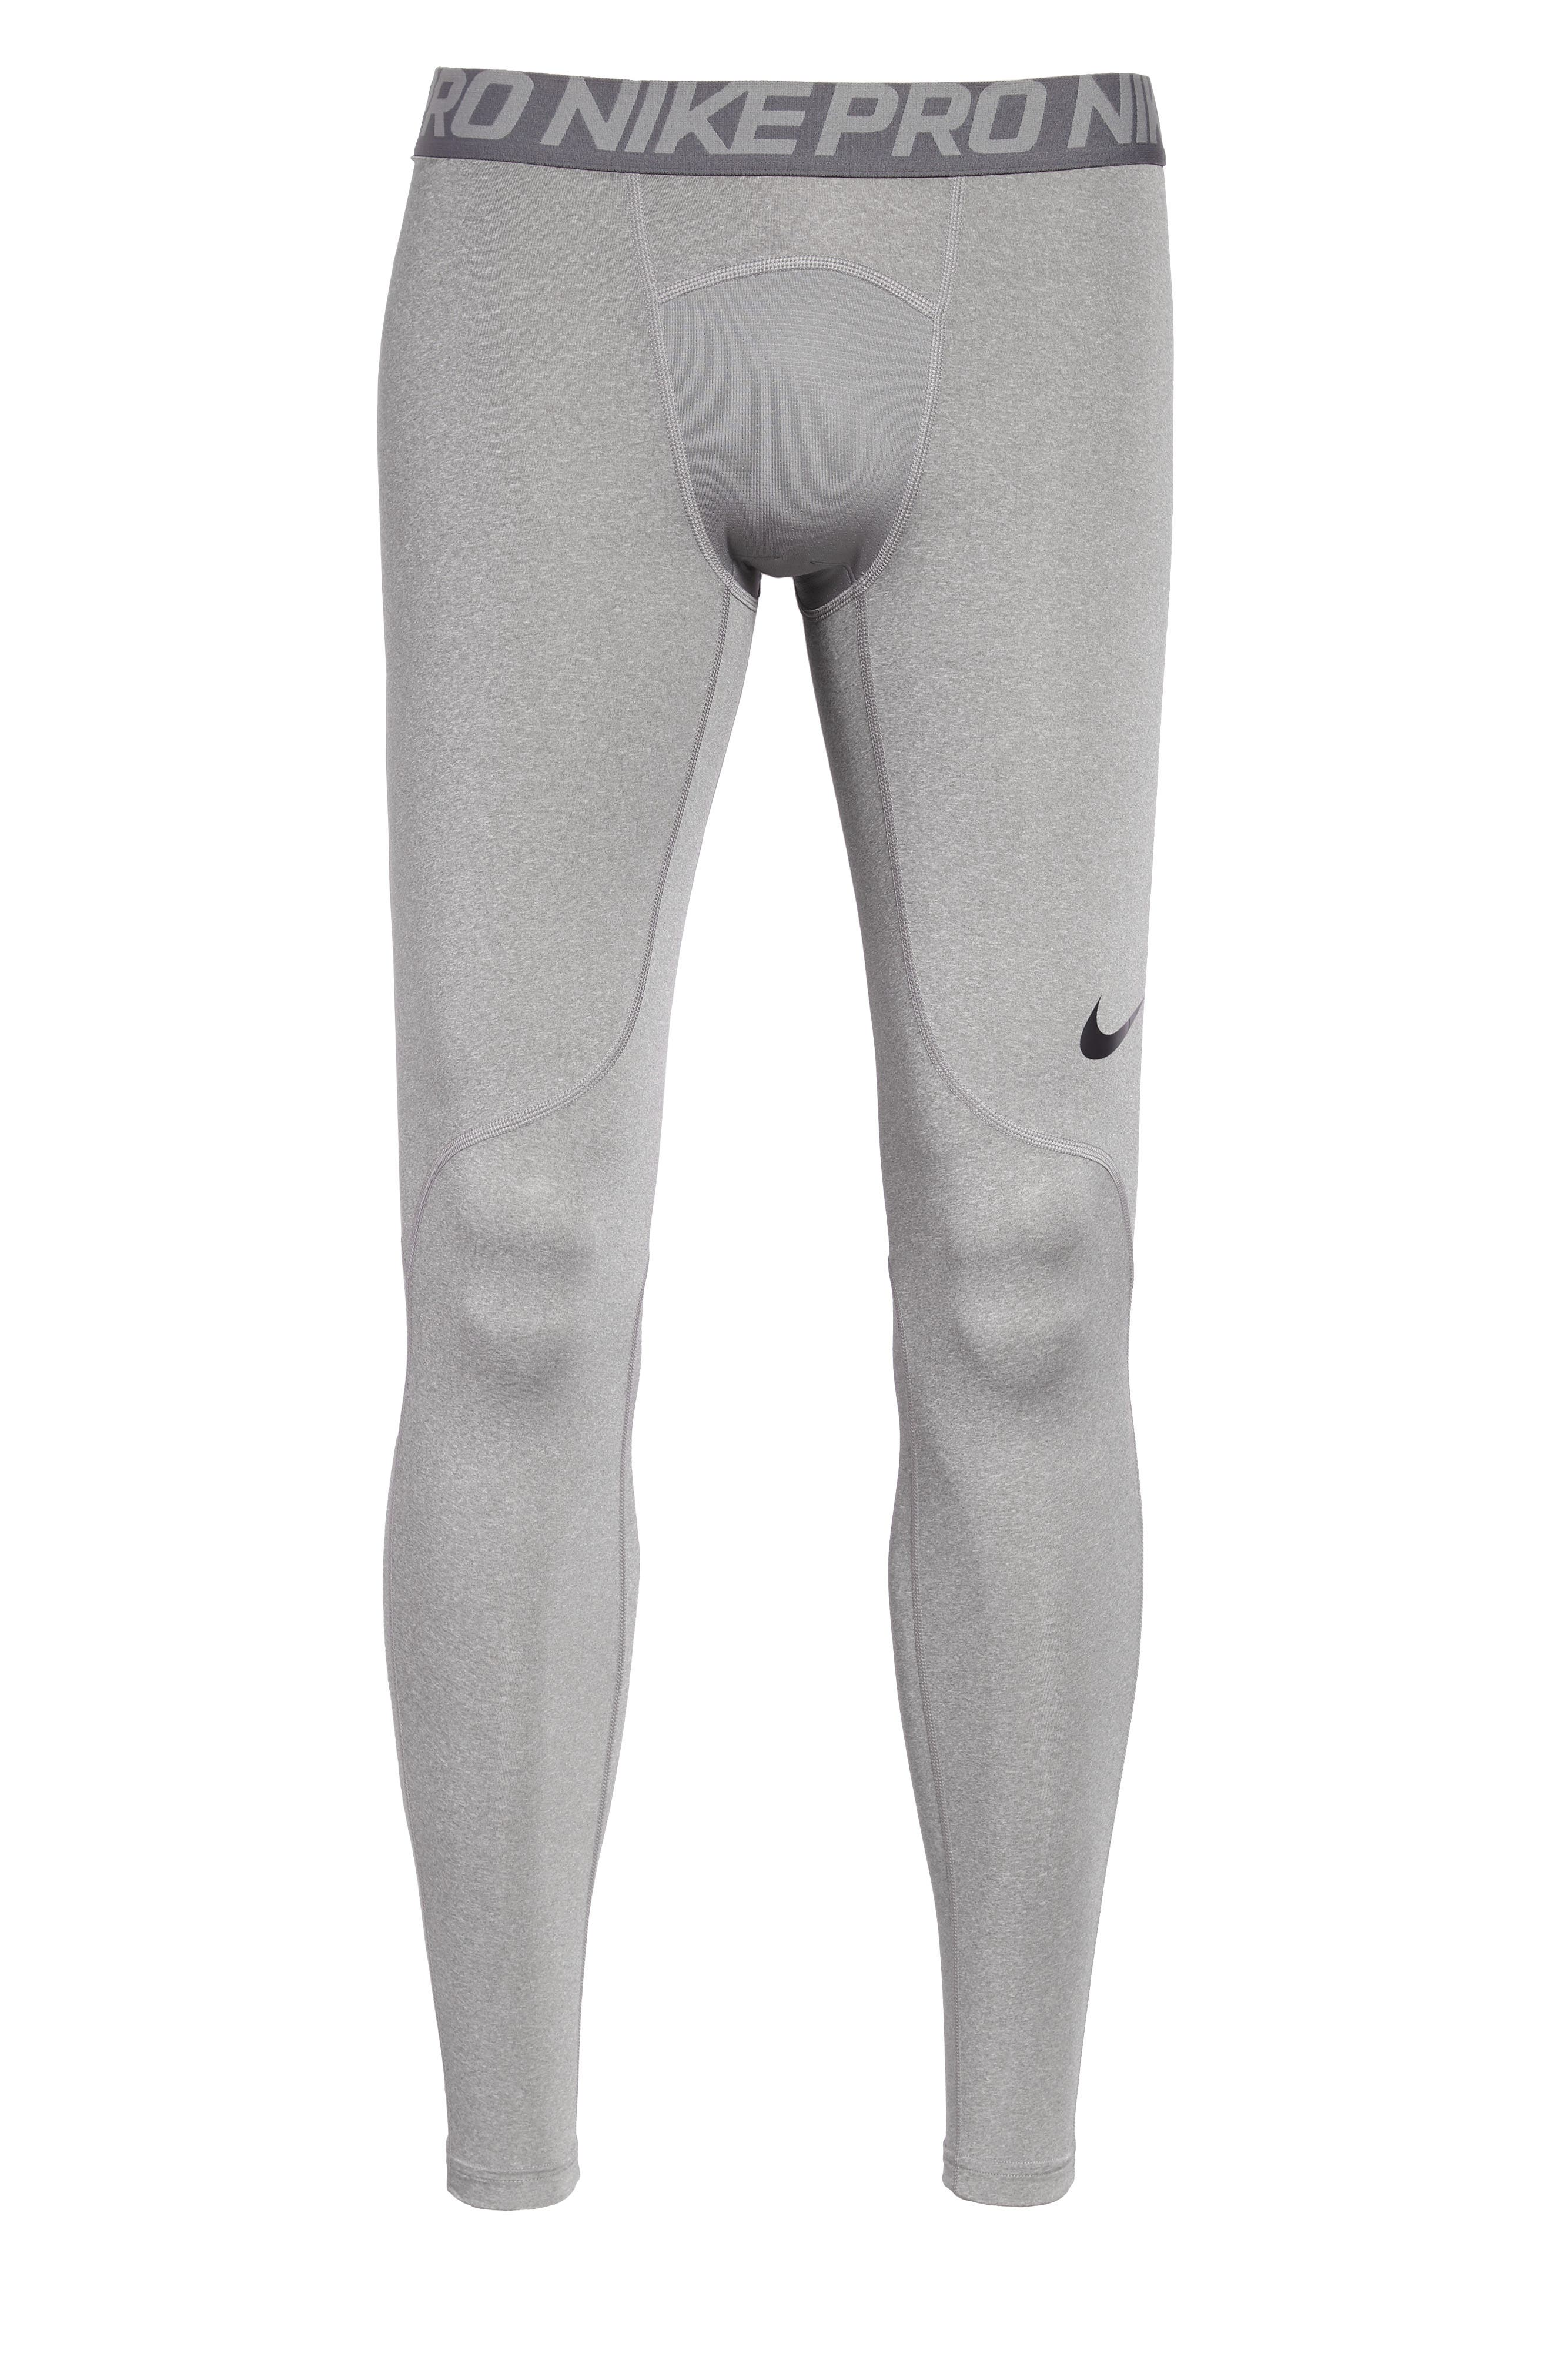 Pro Athletic Tights,                             Alternate thumbnail 6, color,                             CARBON HEATHER/ GREY/ BLACK